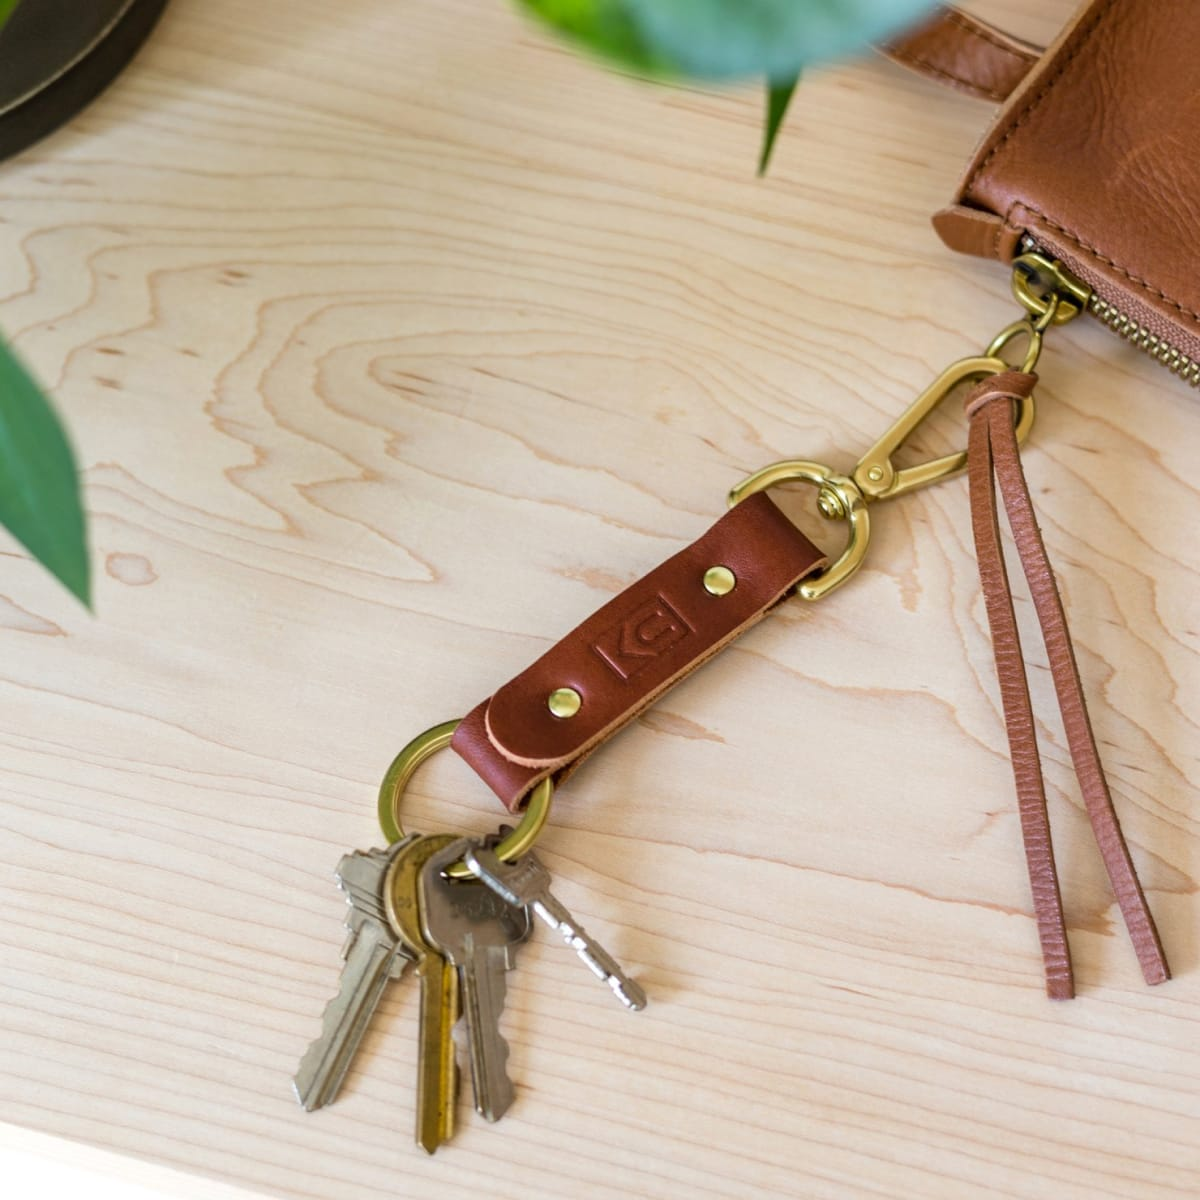 Brown leather key ring with brass metal loops and rivets on wood table.